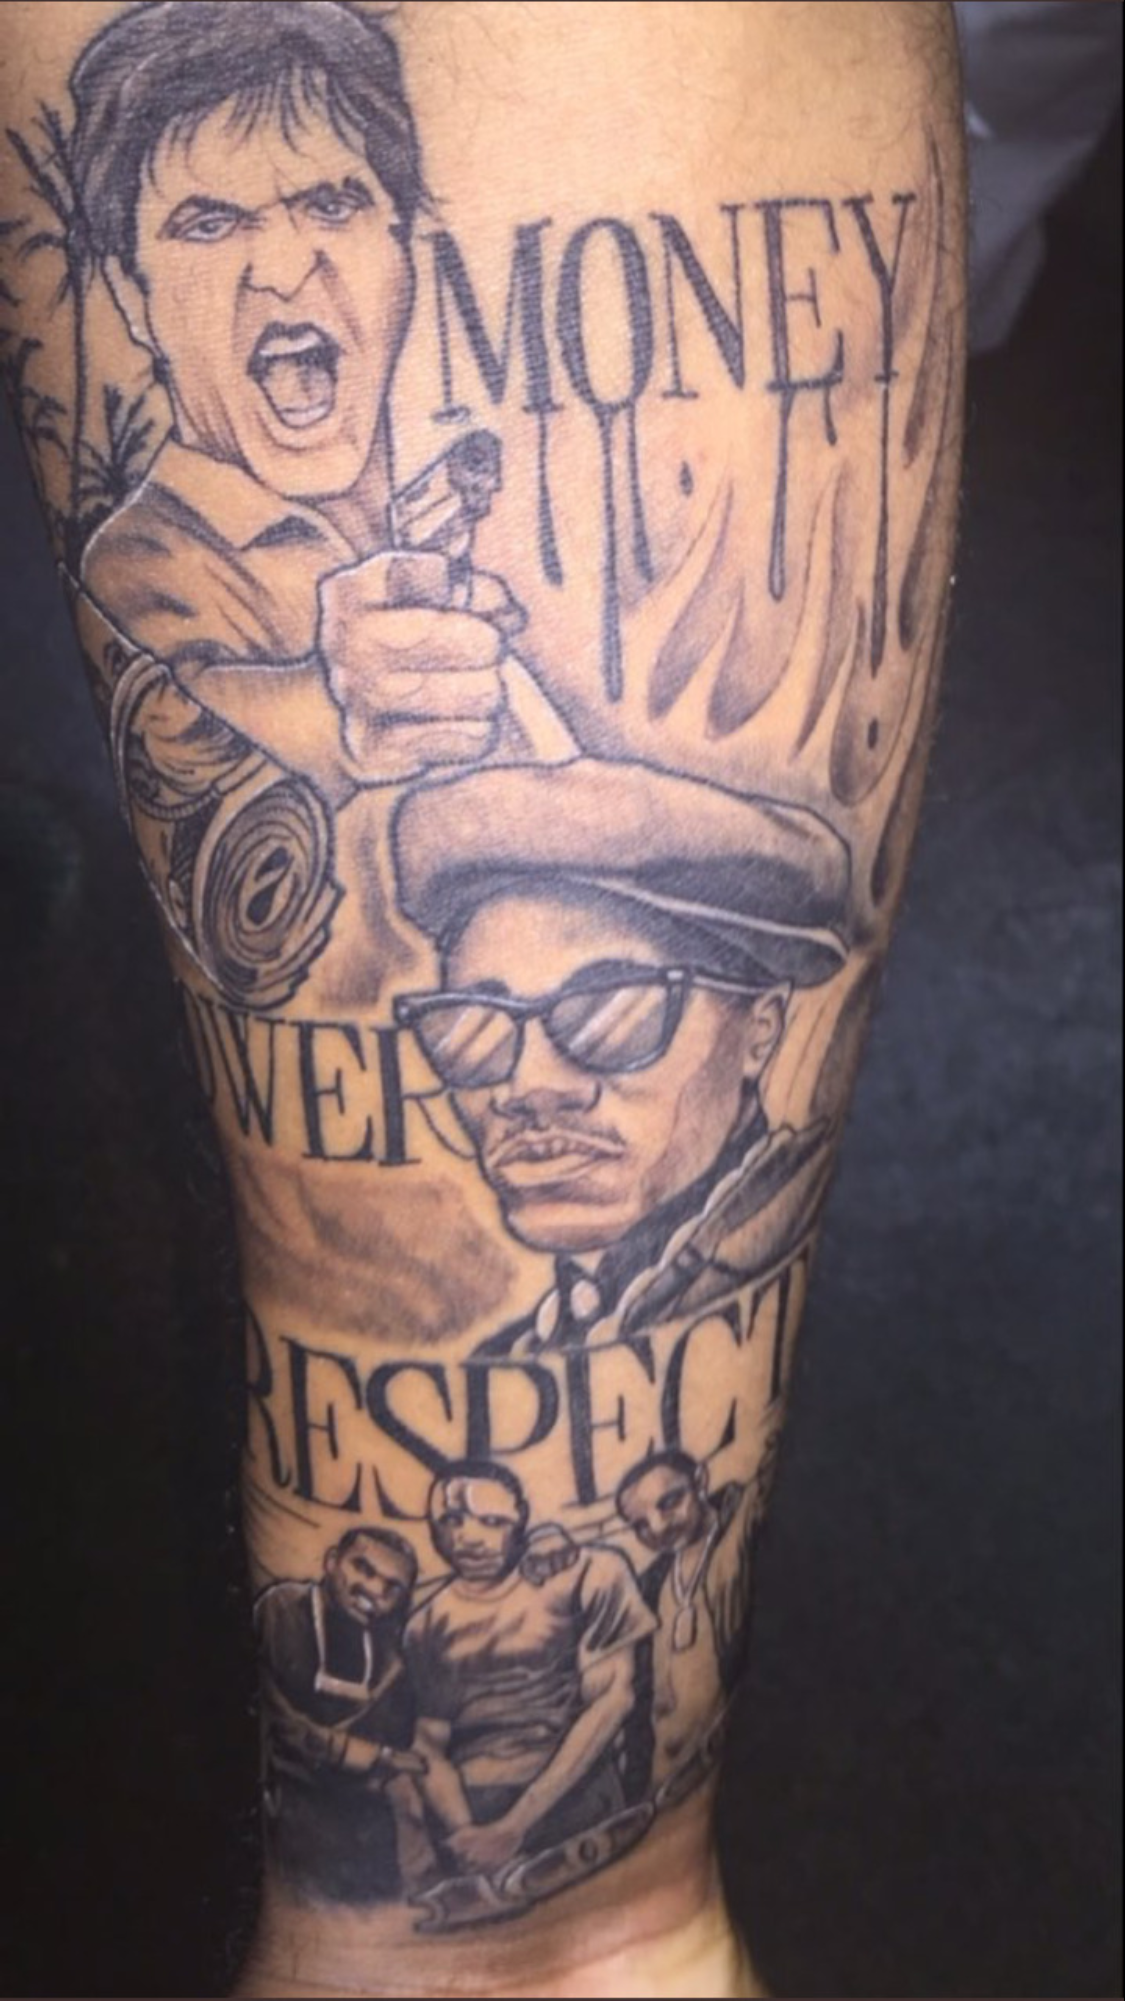 Gangster Monopoly Man Tattoo : gangster, monopoly, tattoo, @shesoglorious❄️, Sleeve, Tattoos, Guys,, Forearm, Tattoo, Quotes,